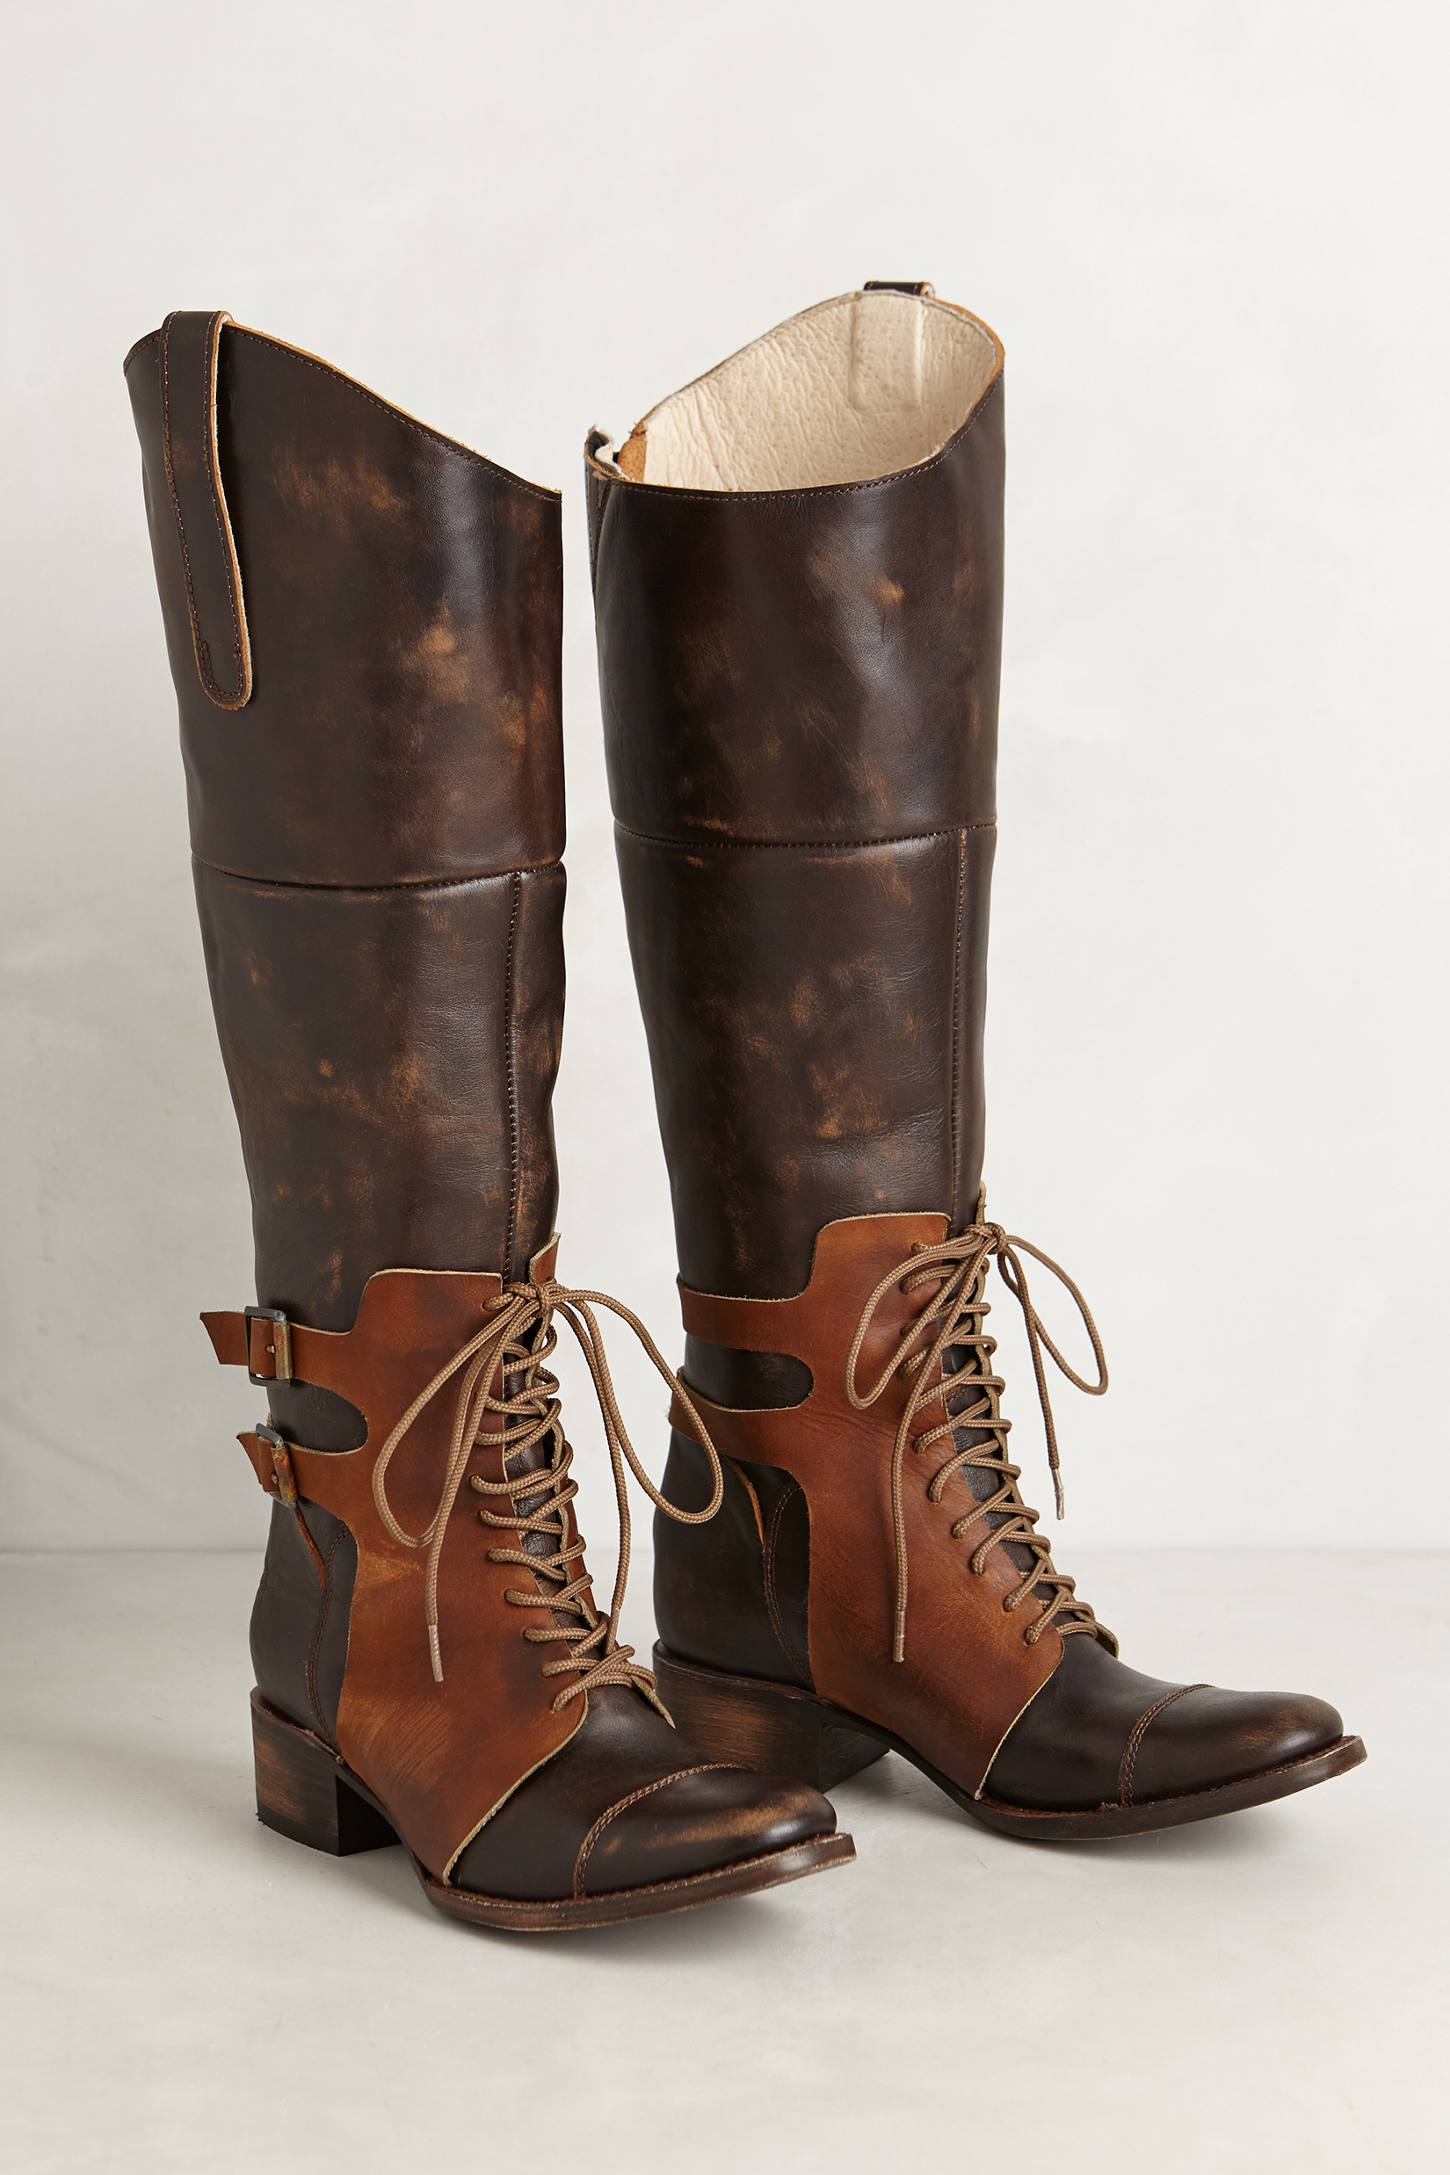 Lyst - Freebird By Steven Thoroughbred Boots in Brown